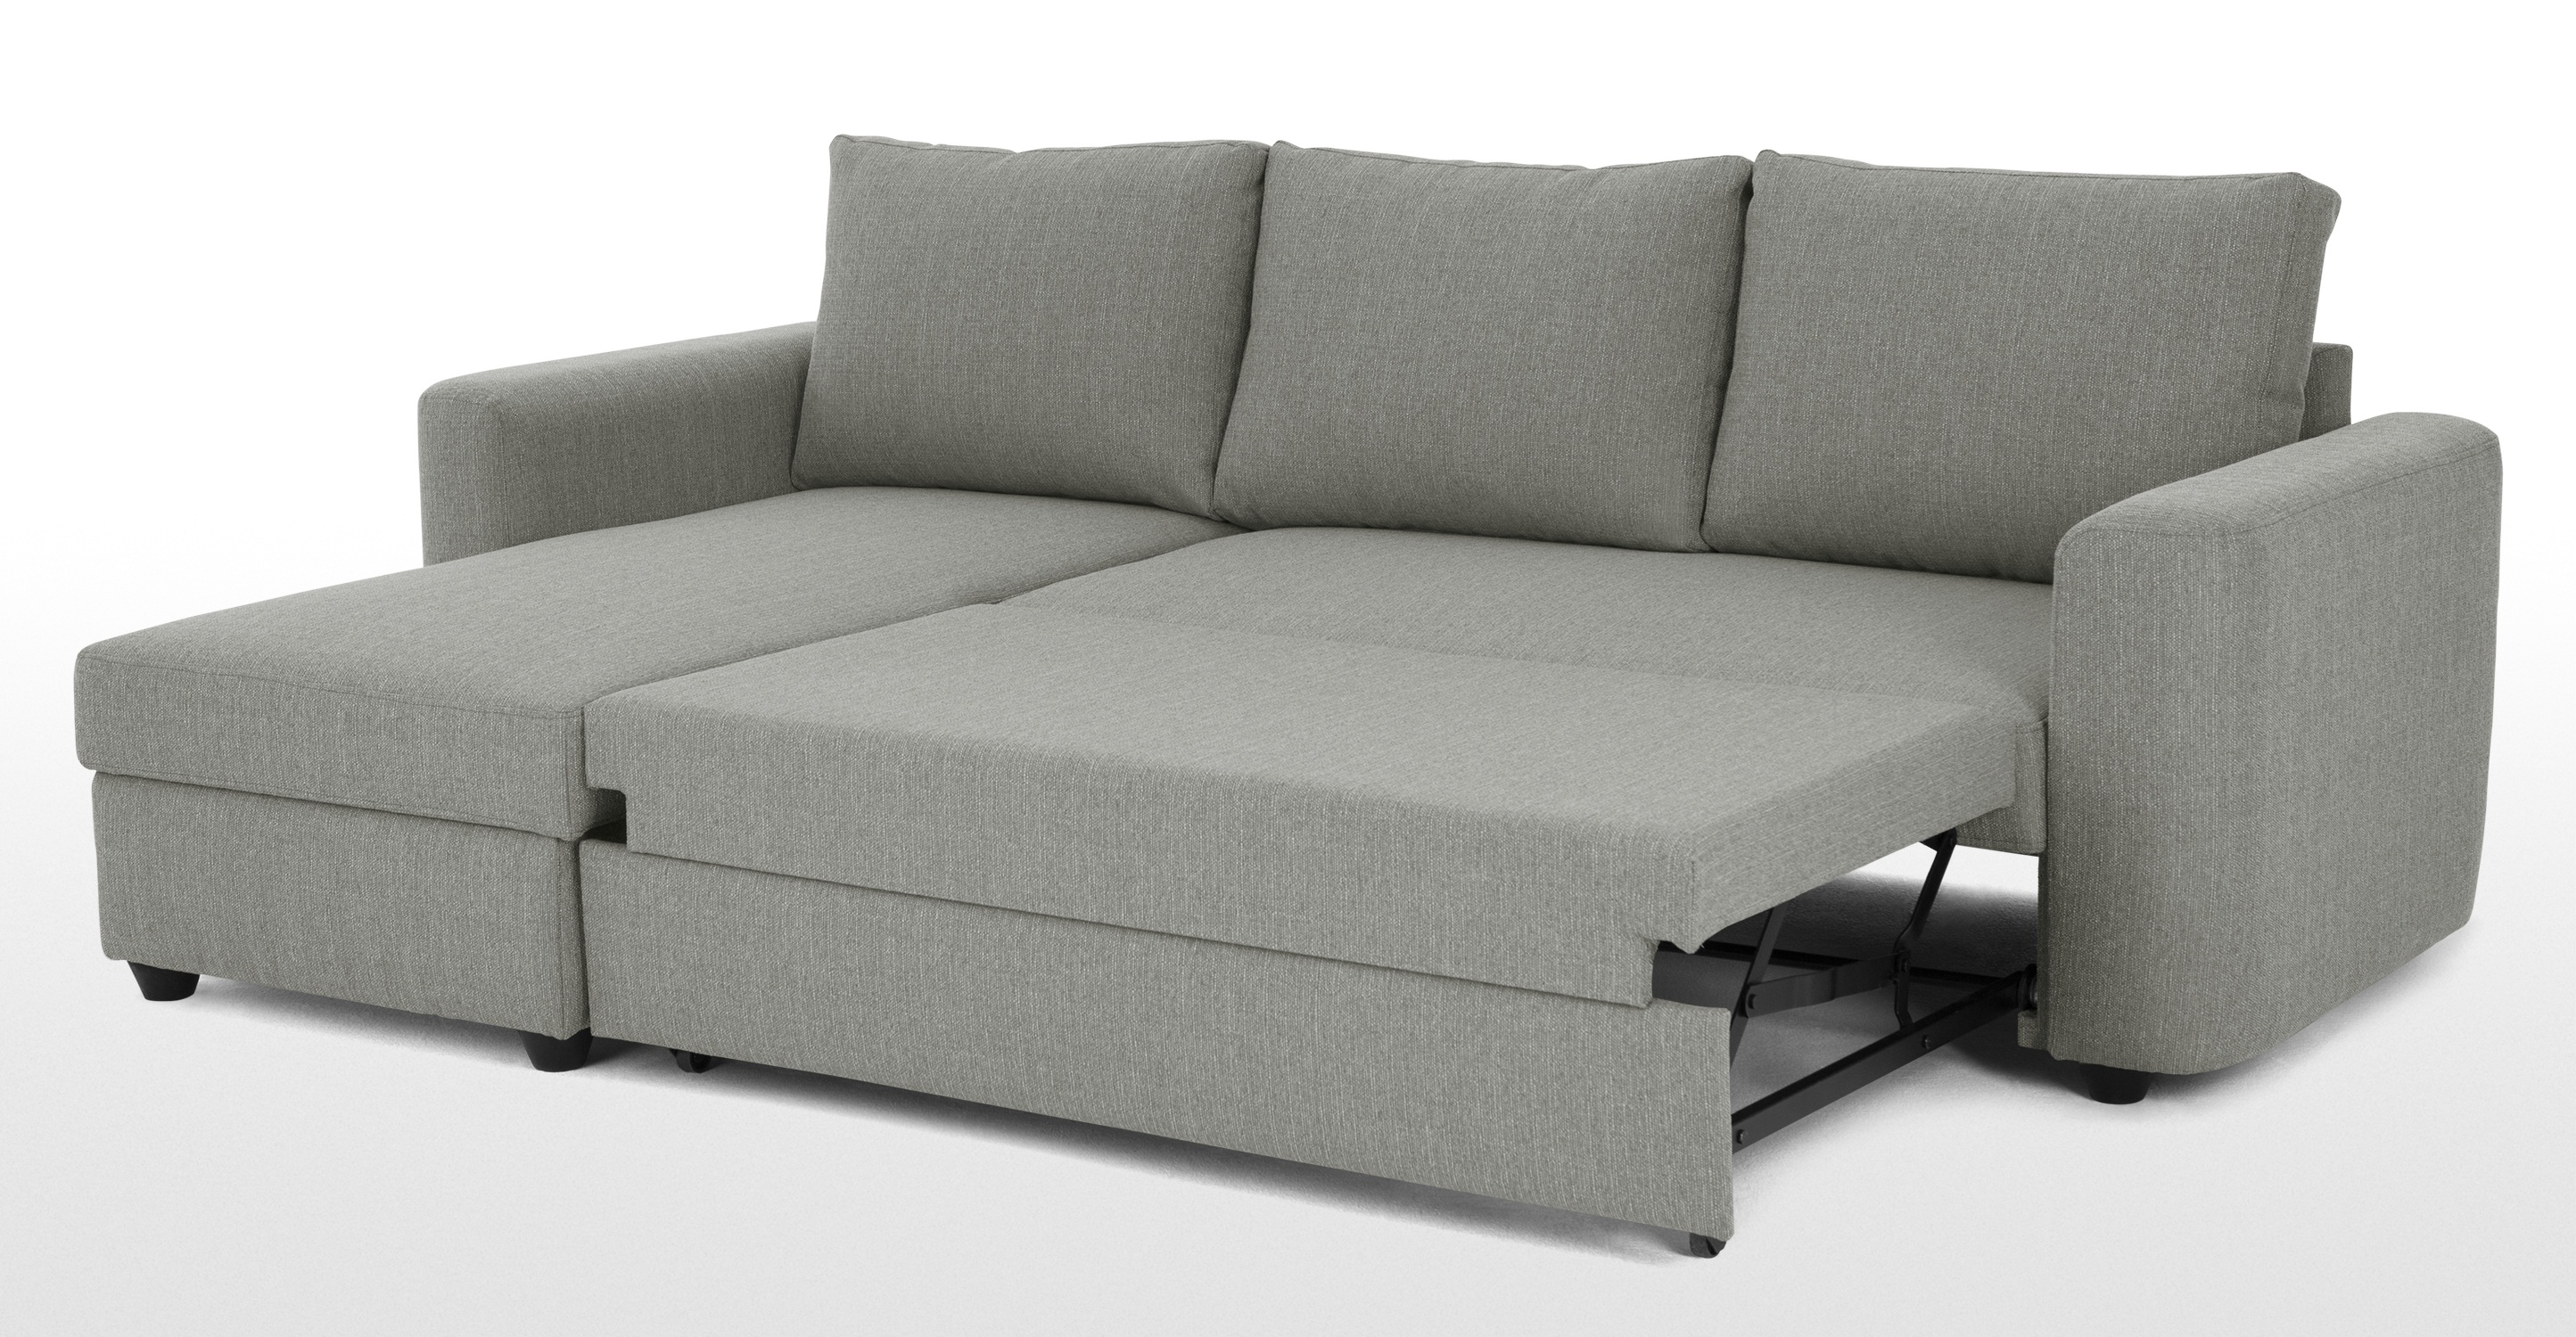 Sofas Center 38 Formidable Corner Sofa Bed Picture Ideas Corner For Cheap Corner Sofas (Image 13 of 15)